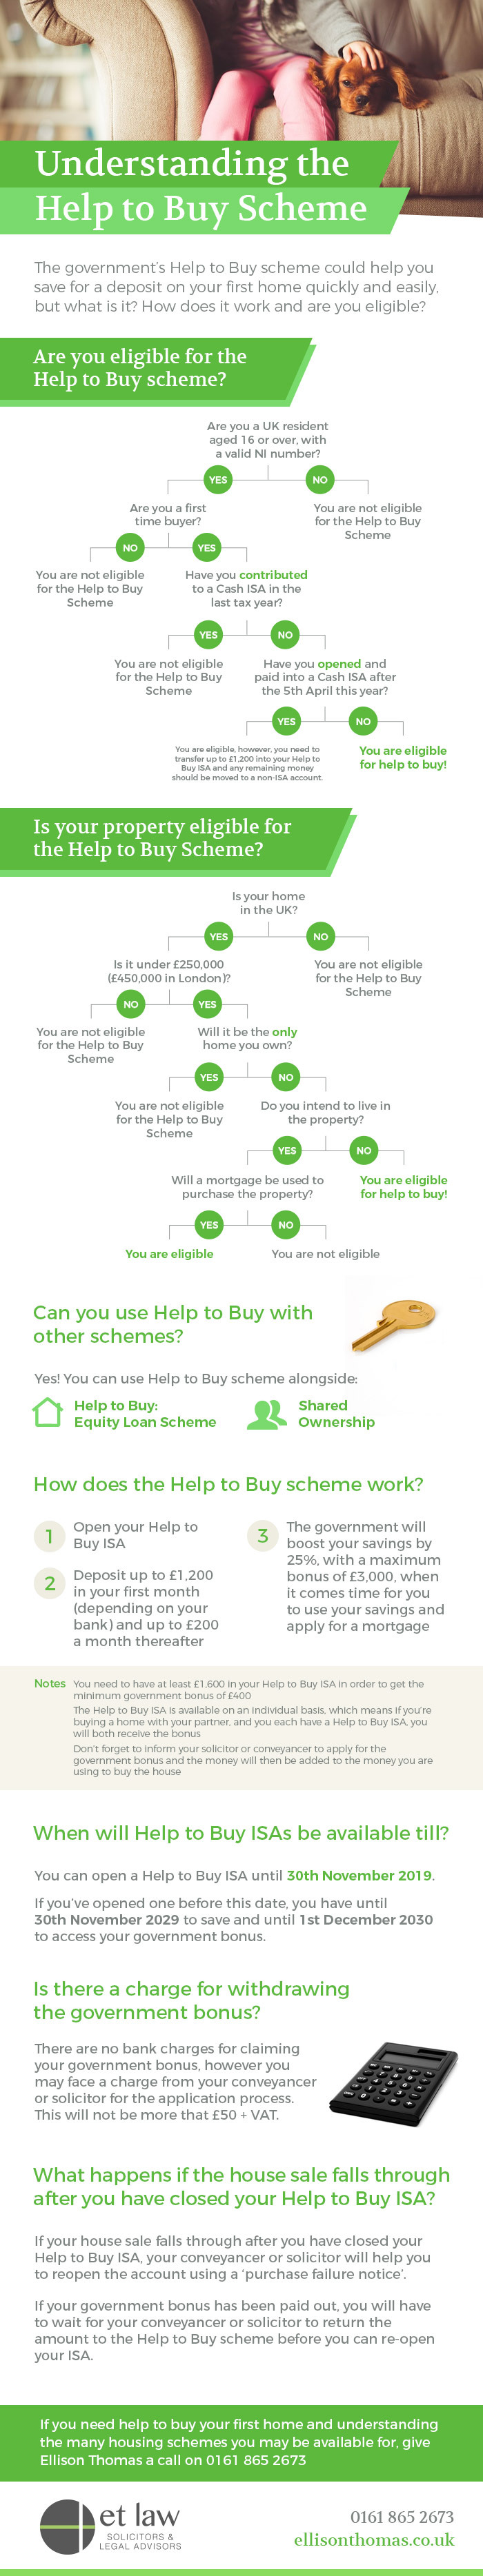 Are You Eligible For Help To Buy?